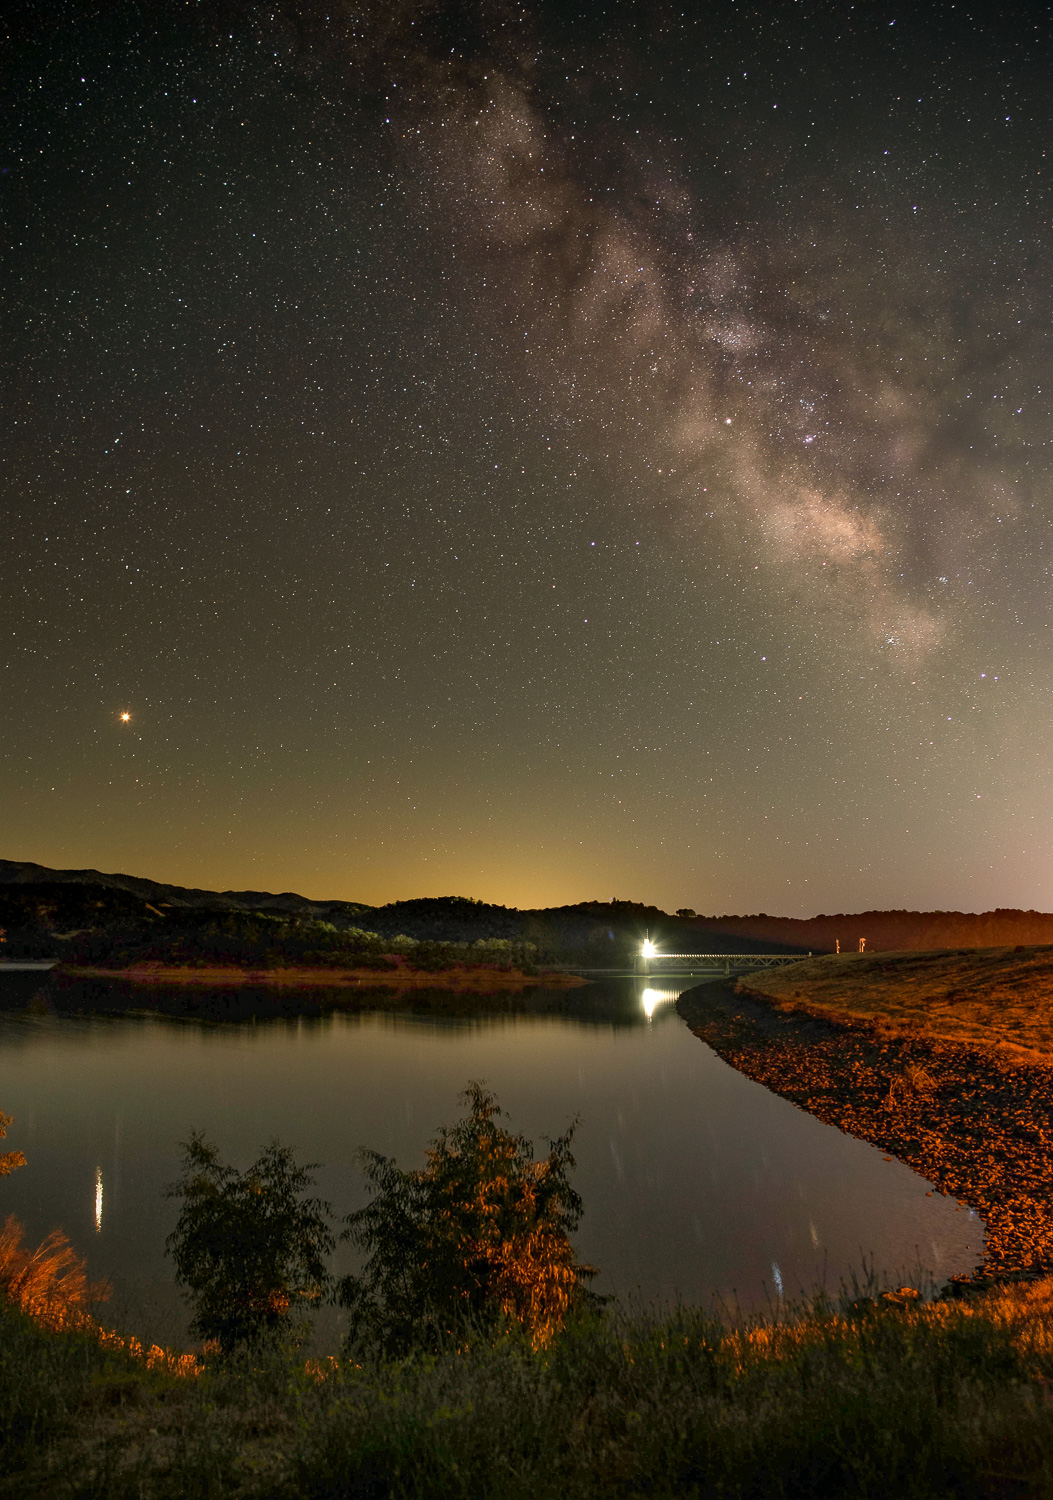 Milky Way Lake Mendocino, Mendocino County, California